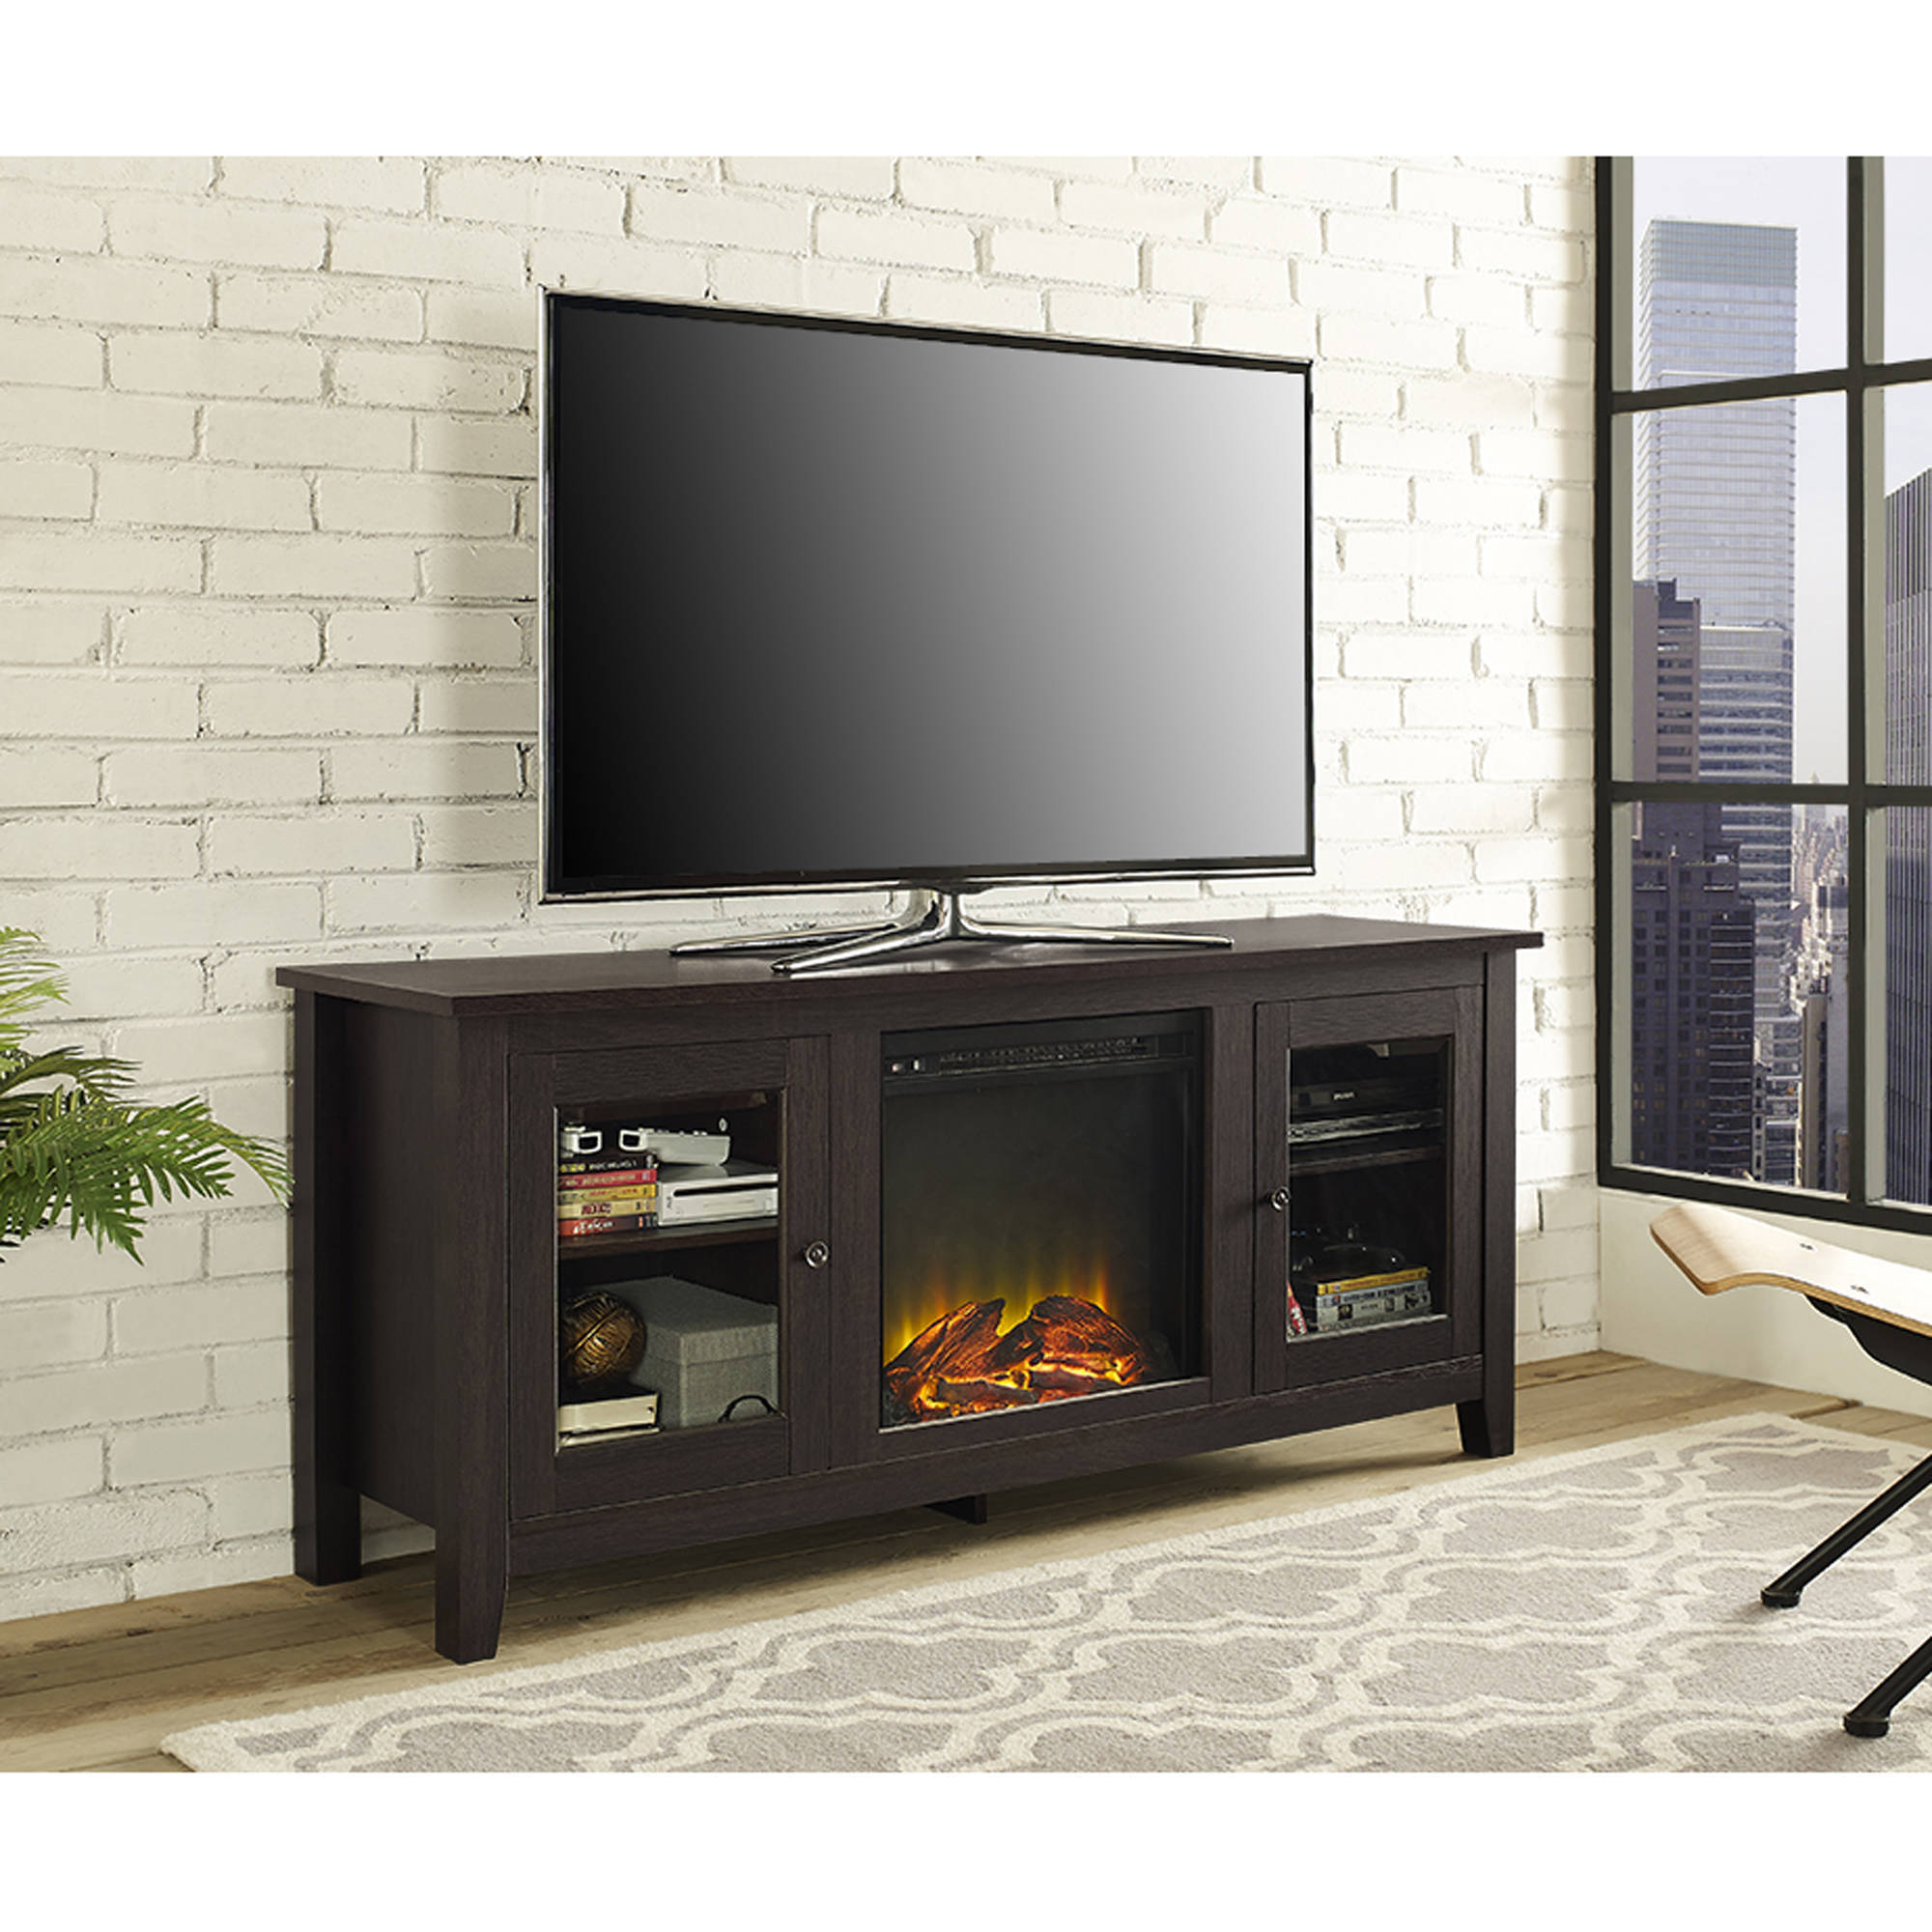 Tv Stands & Entertainment Centers – Walmart With Regard To Widely Used 24 Inch Tall Tv Stands (View 17 of 20)